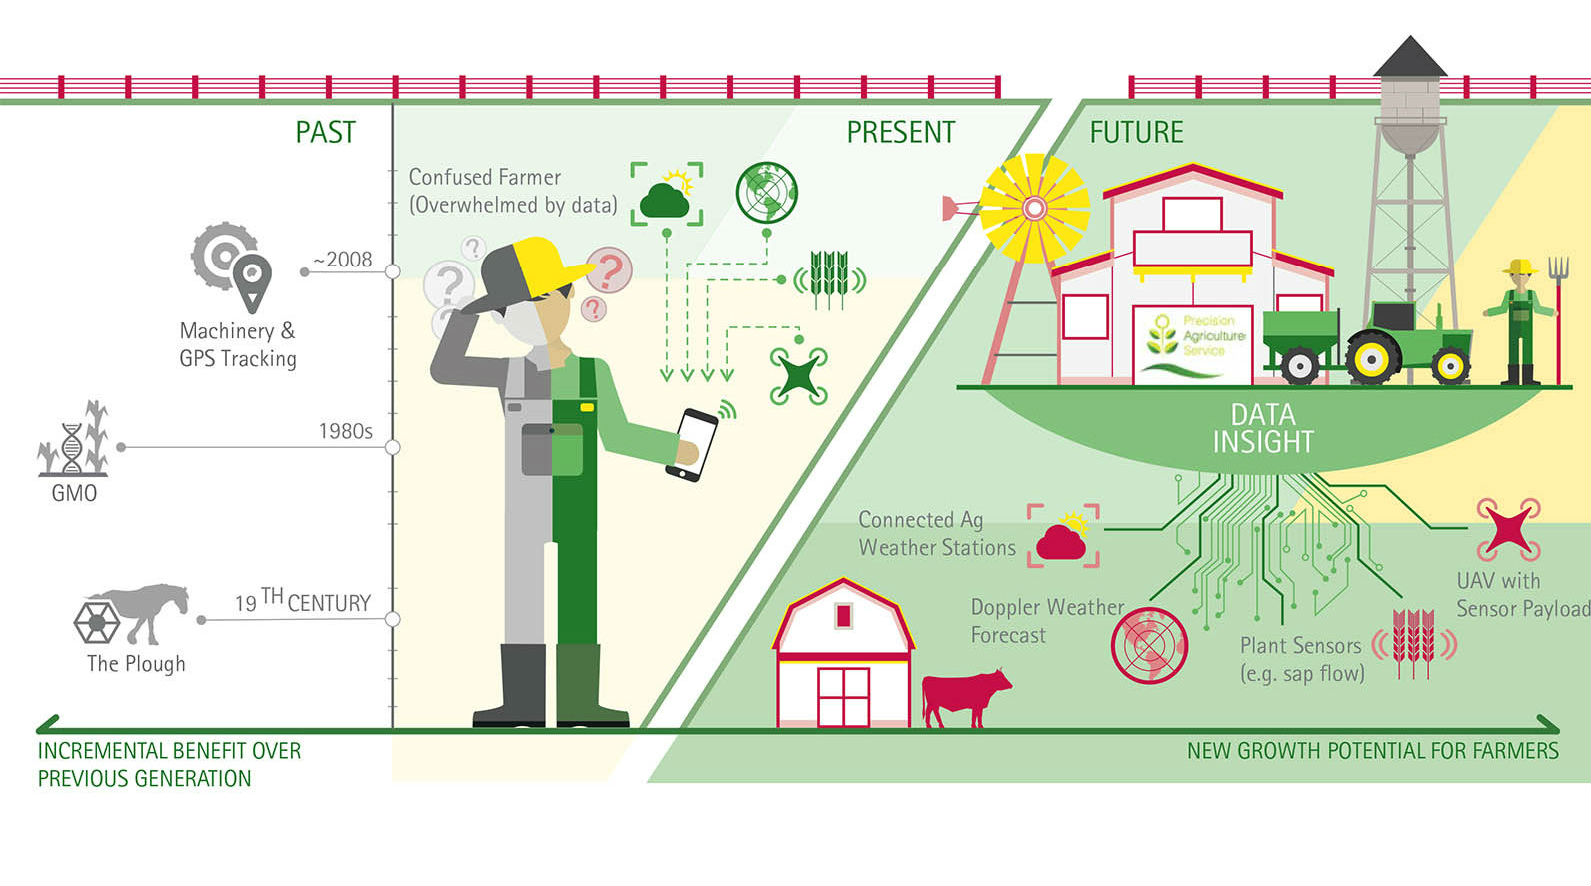 Digital Technologies in Agriculture: adoption, value added and overview |  by Ivanov Igor | Gamaya blog | Medium